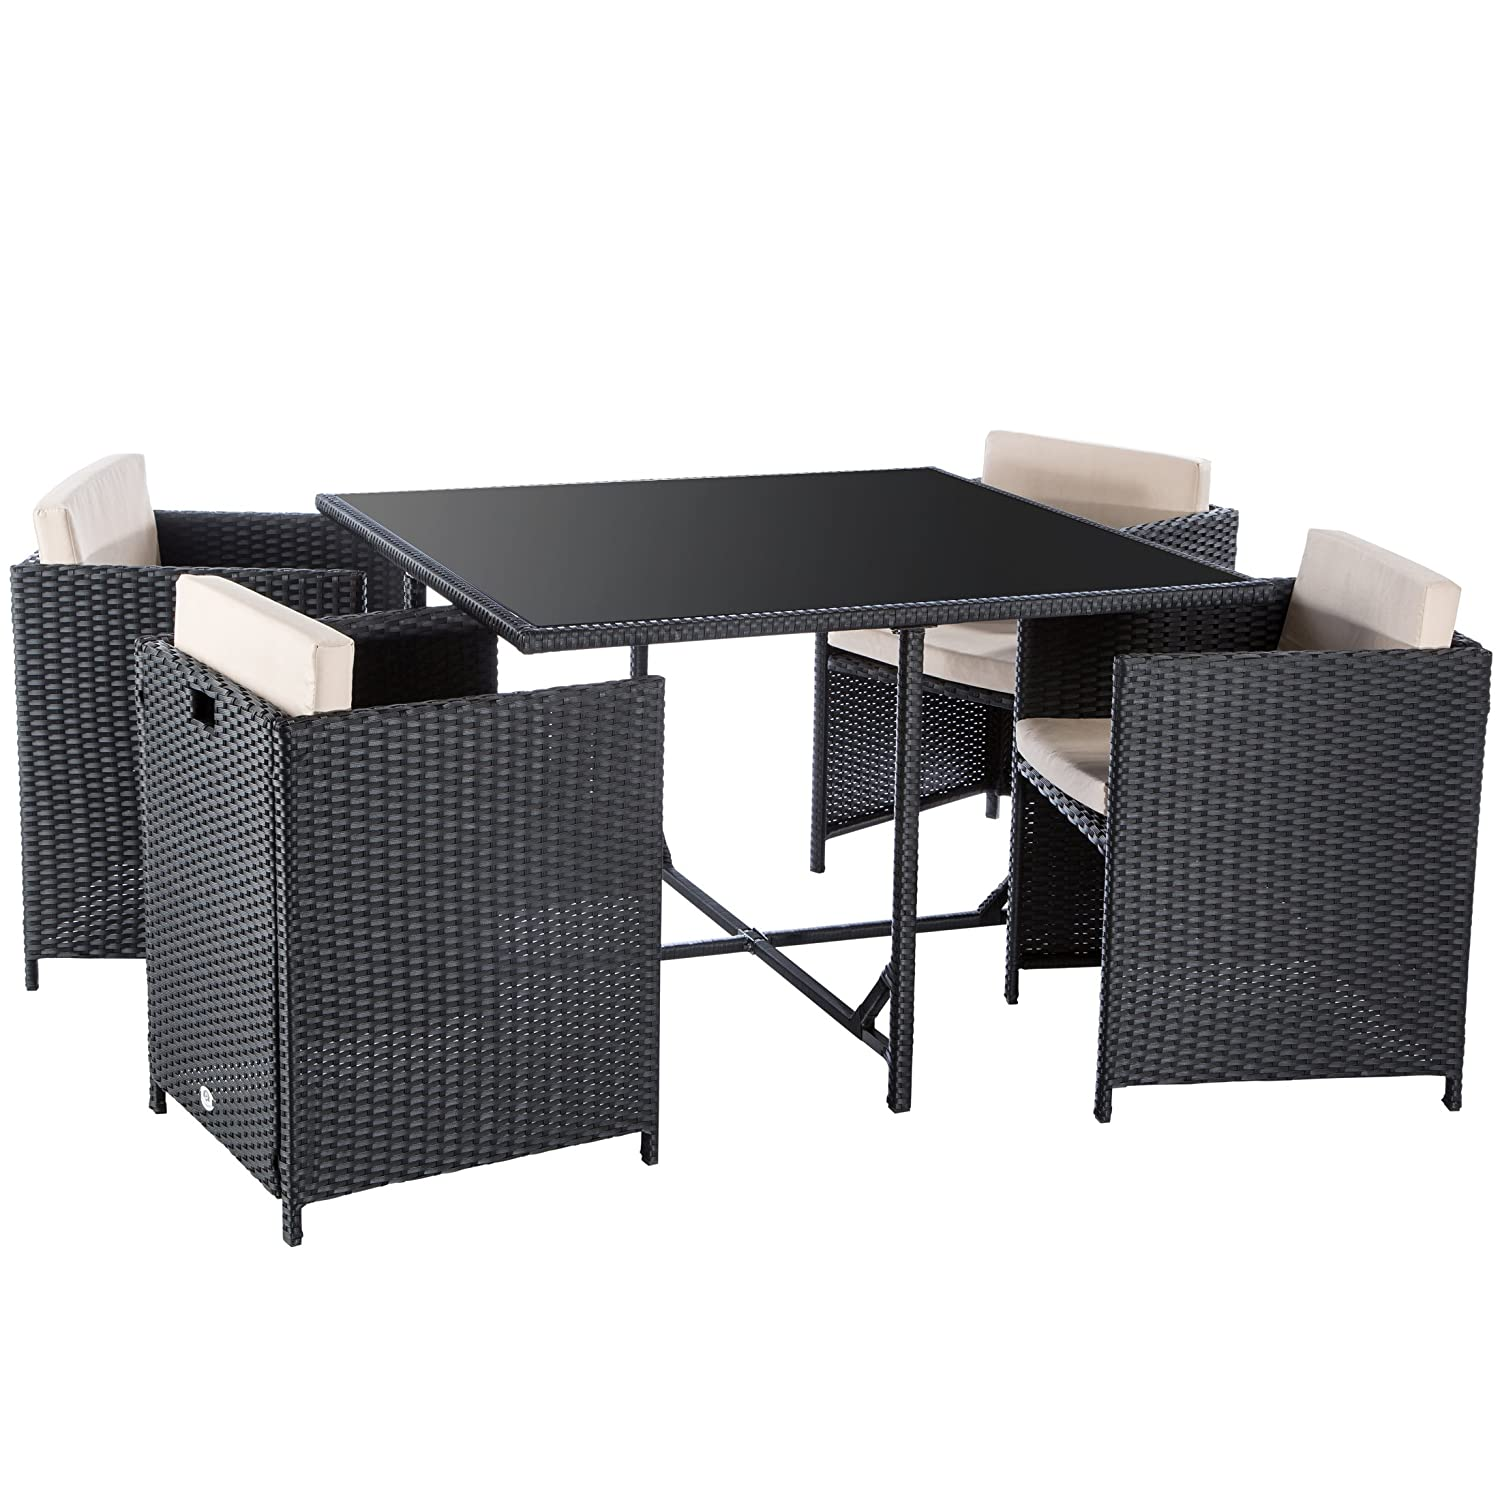 ultranatura poly rattan lounge set palma serie 5 teilig tisch 4 sessel inklusiv auflagen. Black Bedroom Furniture Sets. Home Design Ideas